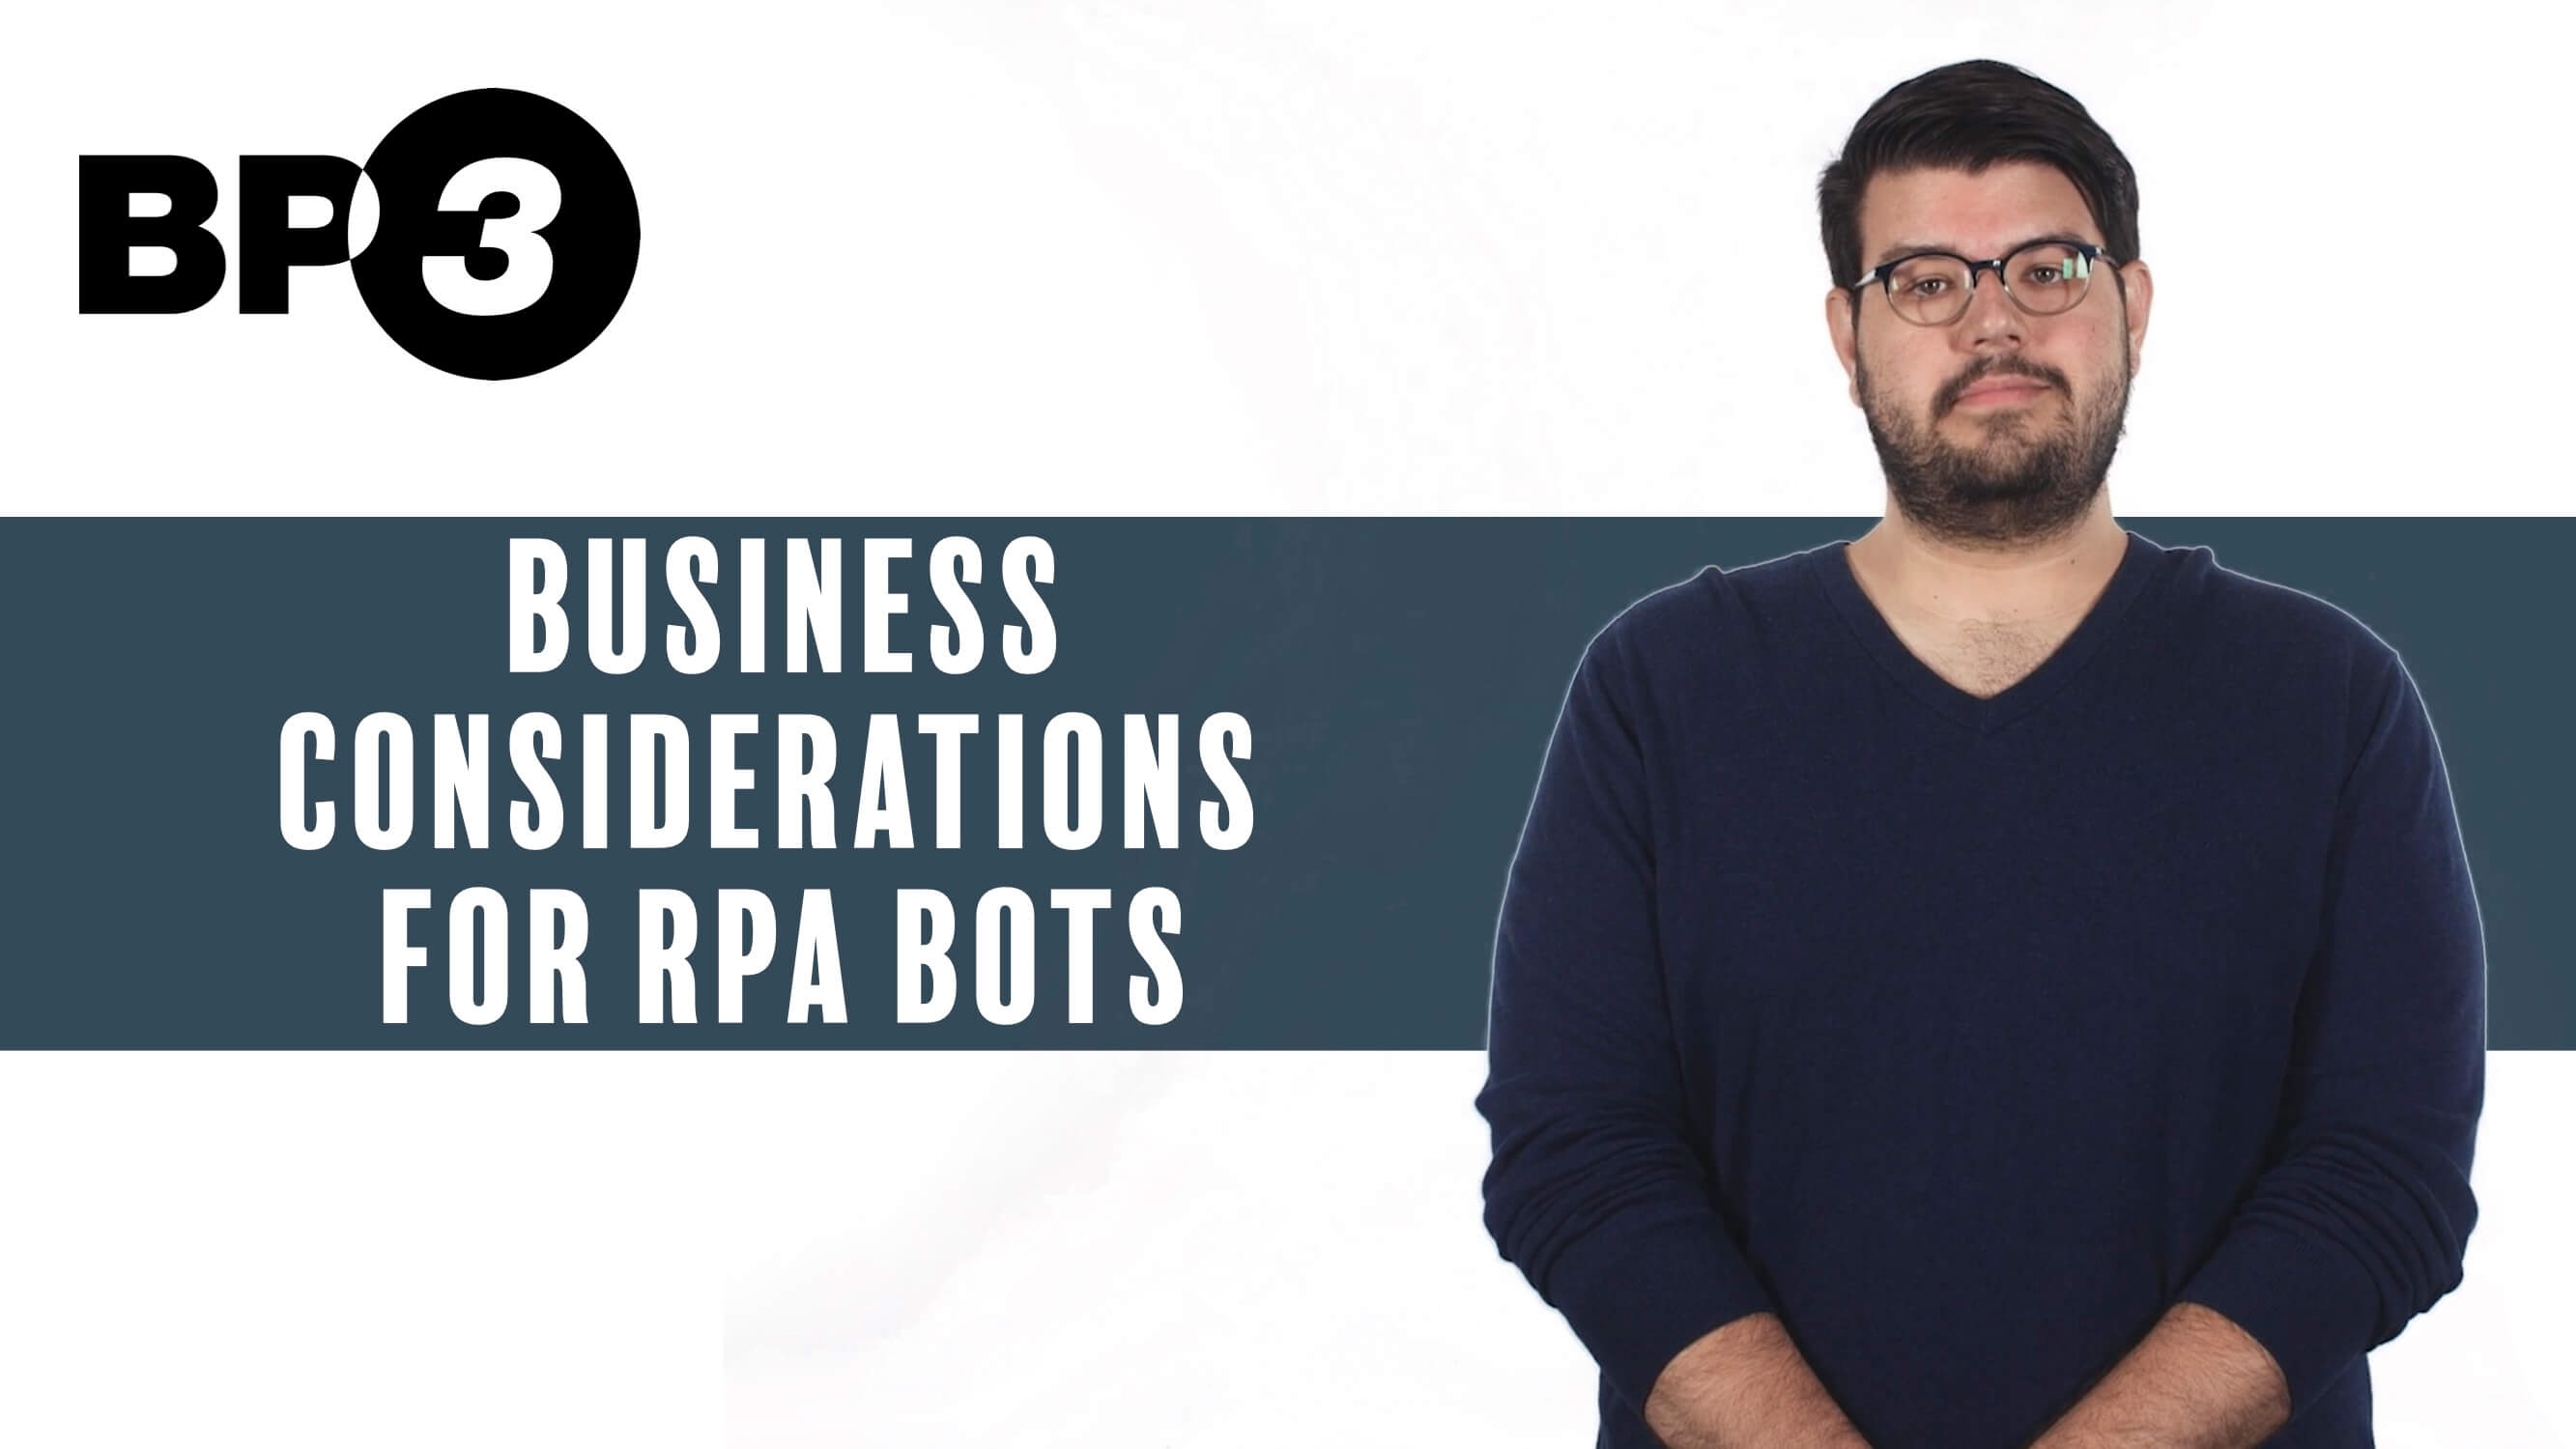 Business Considerations for an RPA Bot